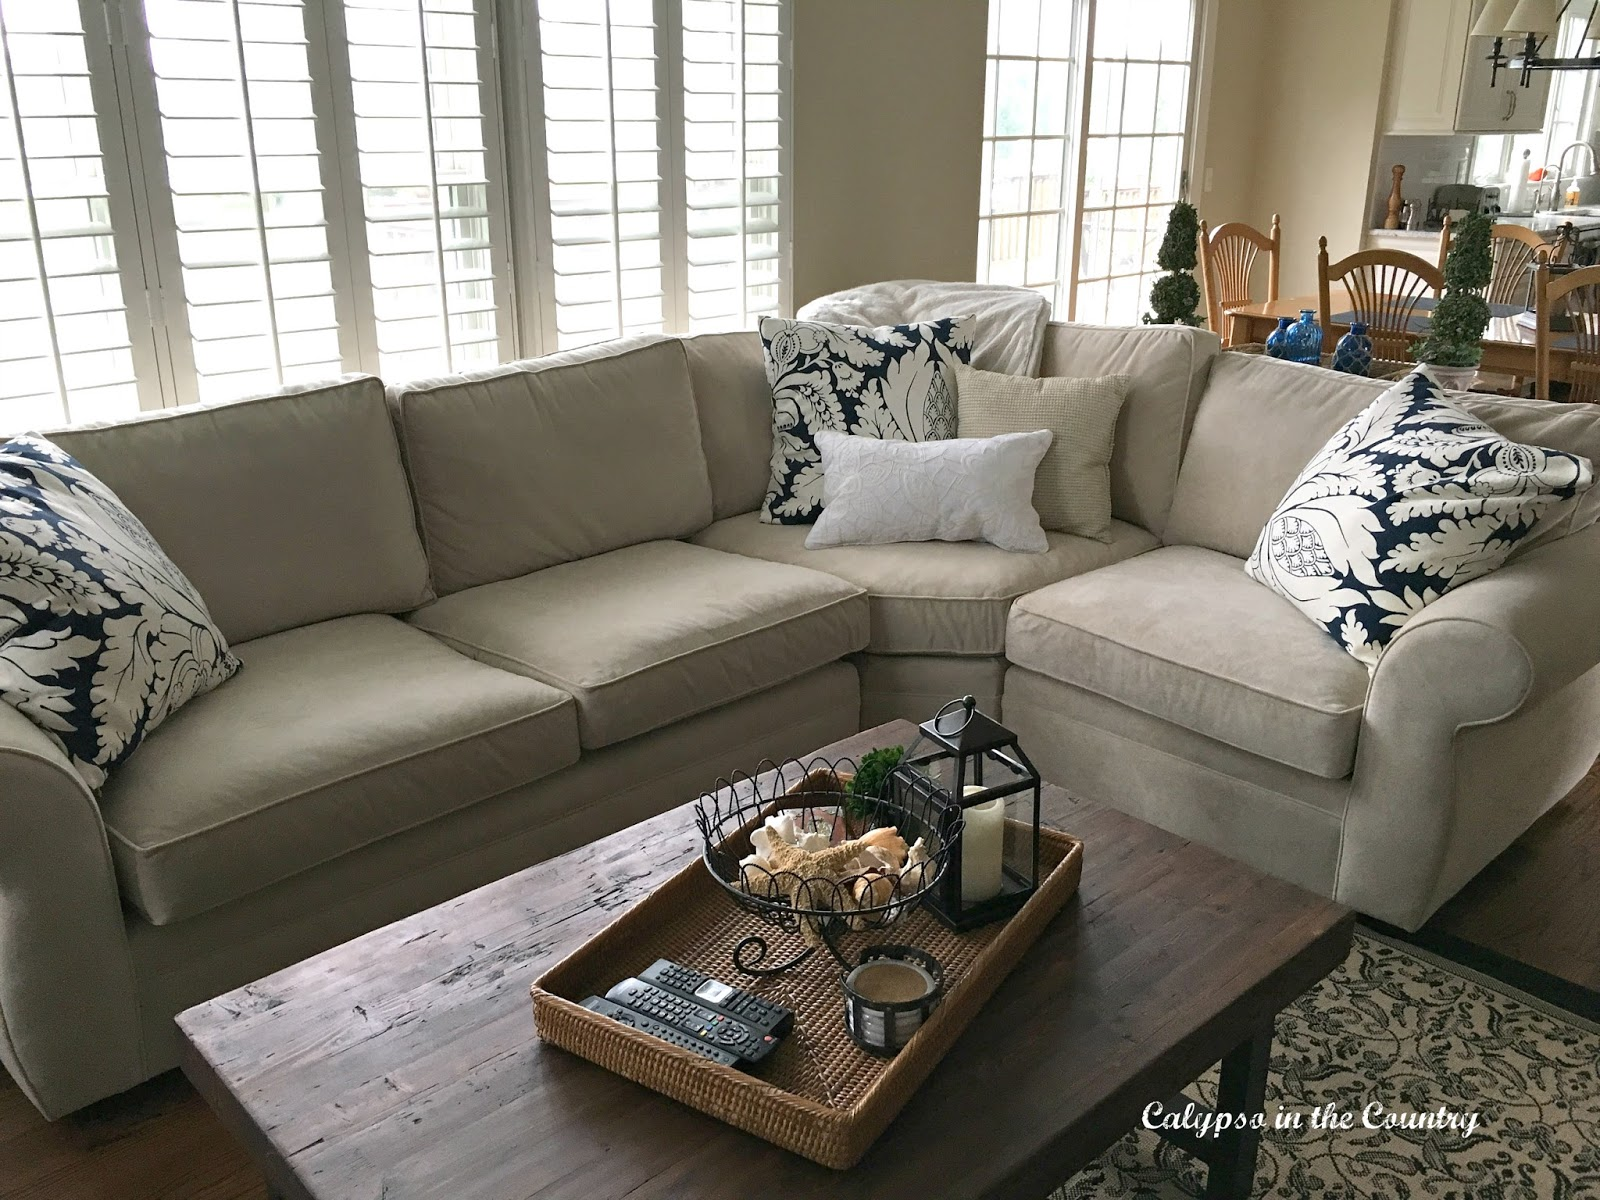 New Sectional Sofa - Room in Progress